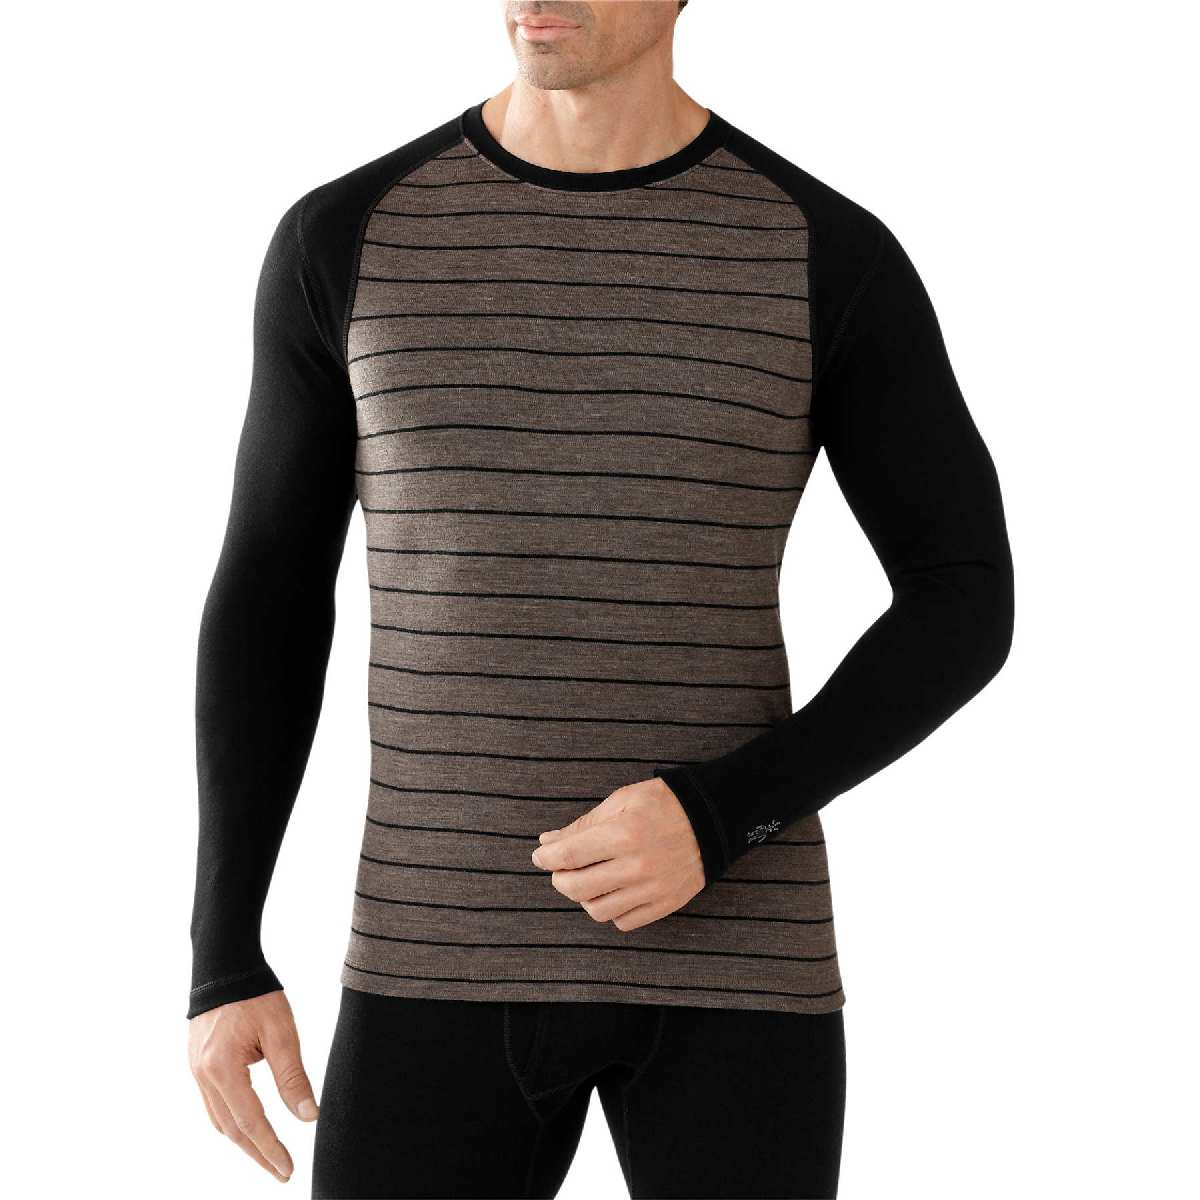 SmartWool NTS Mid 250 Pattern Crew Long Sleeve Base Layer Men's Size S TaupeHeather Black U.S.A. & Canada